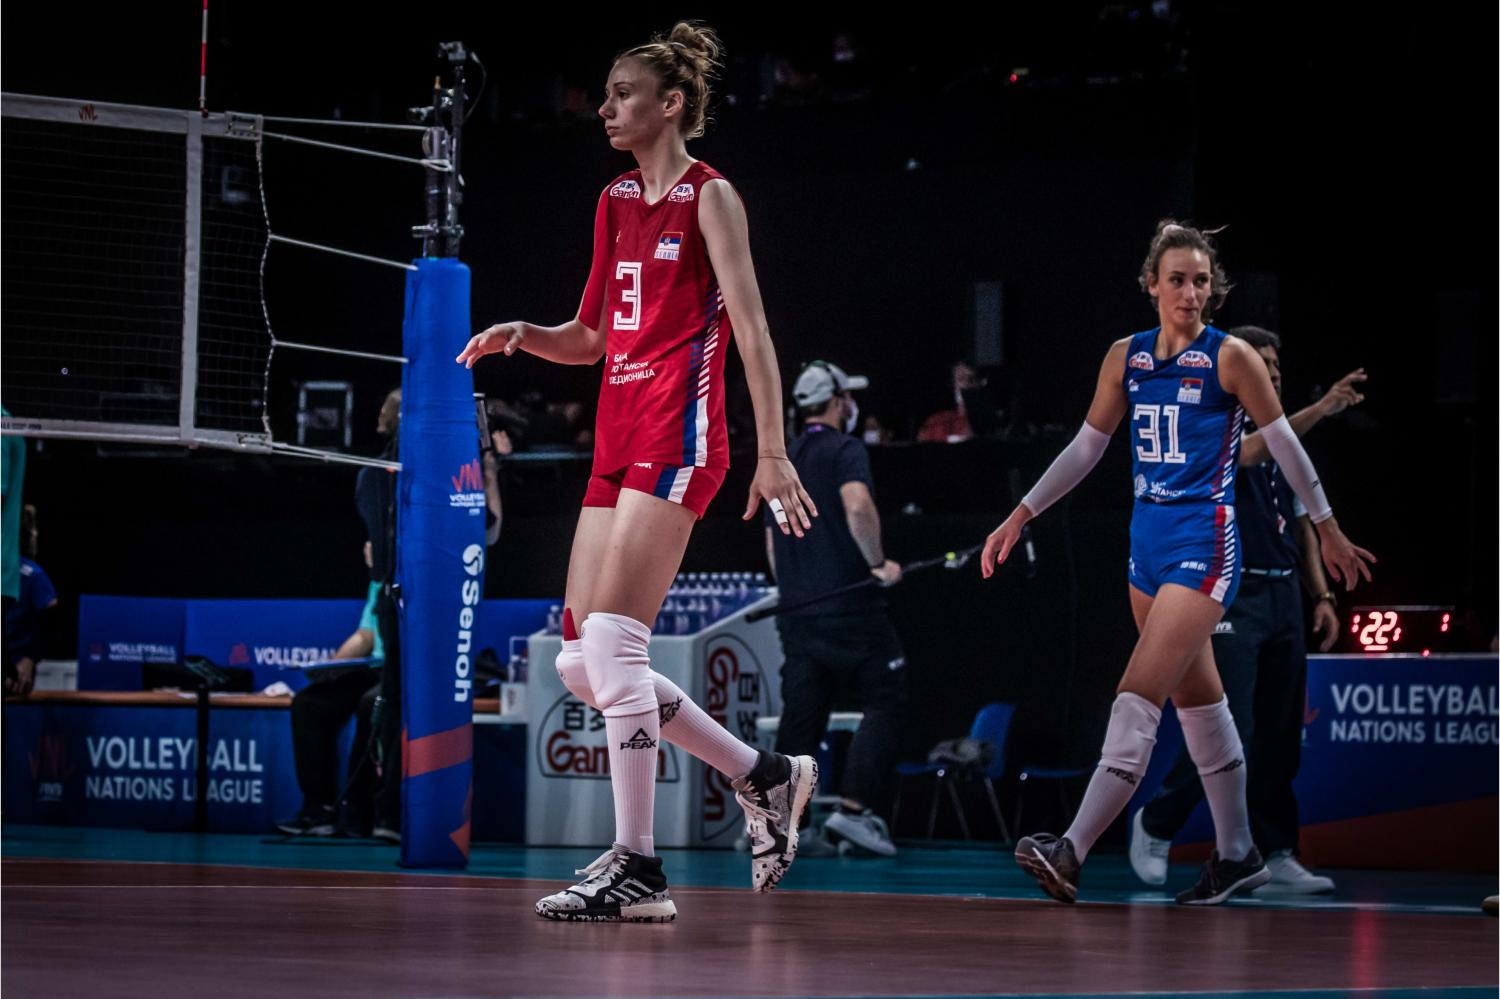 Serbia's Sanja Djurdjevic during the match against Thailand.(FIVB photo)